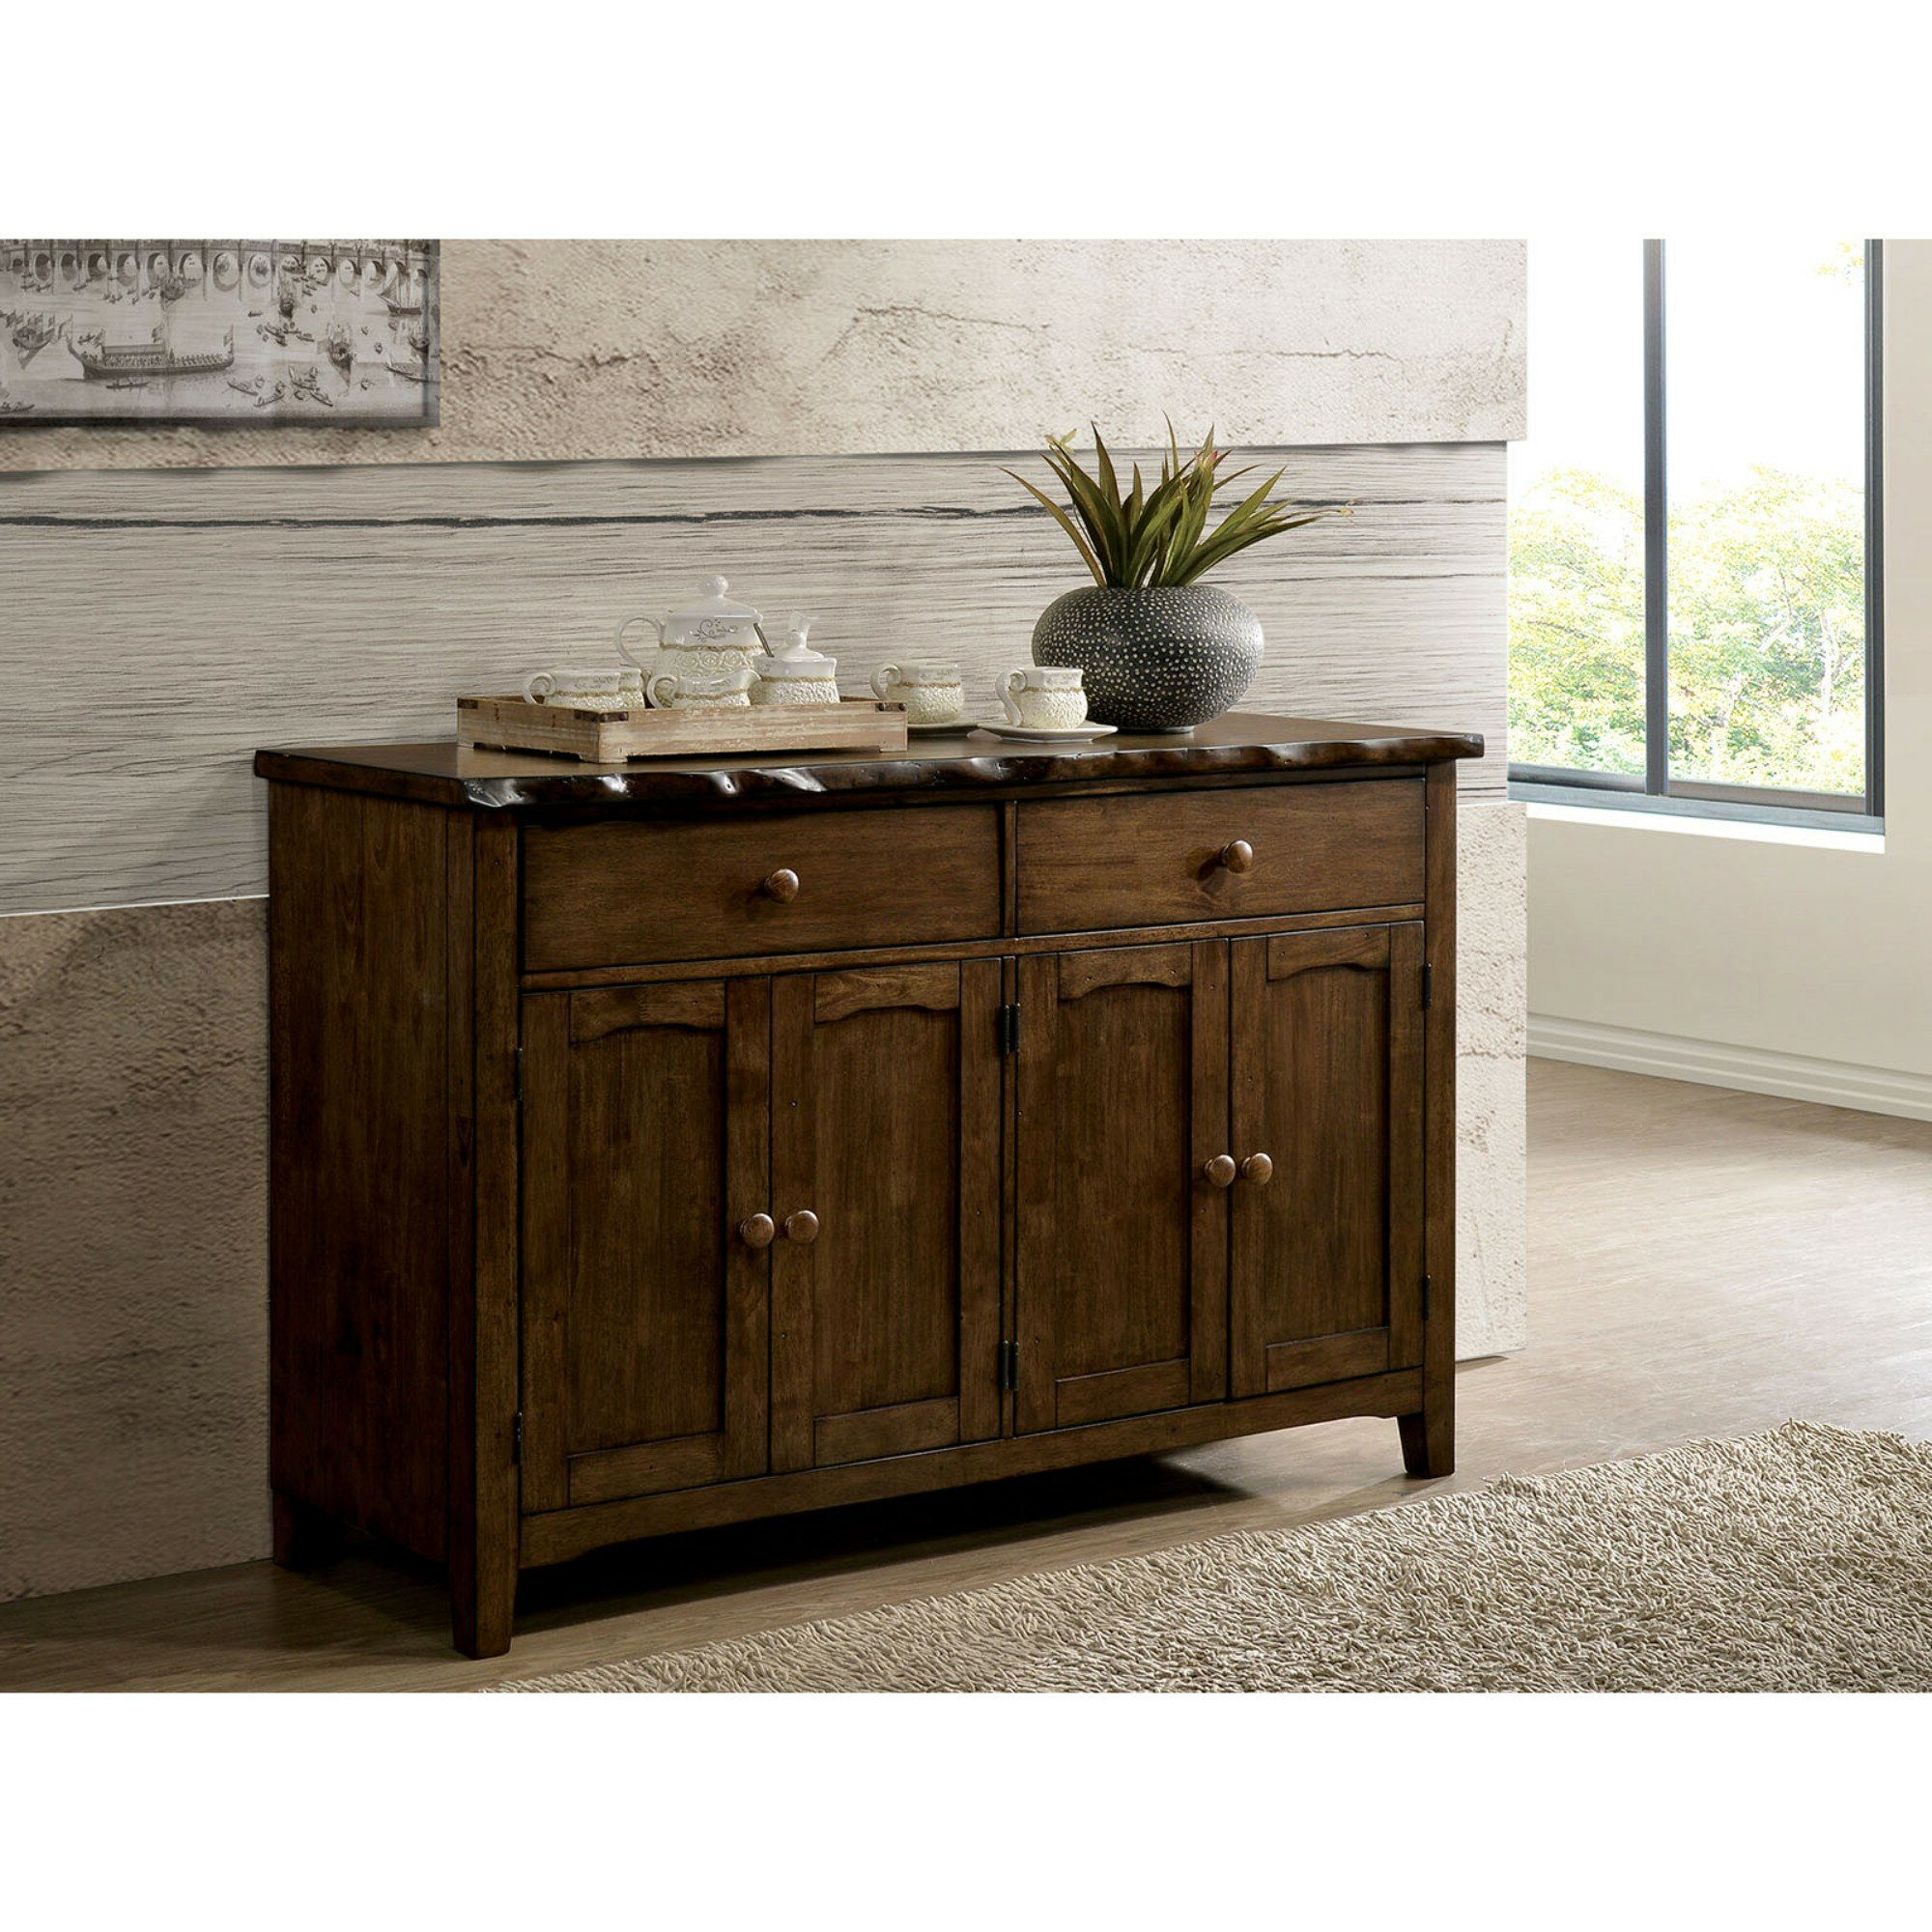 Preferred Sprowston Rustic Solid Wood Rectangular Sideboard Intended For Whitten Sideboards (View 10 of 20)